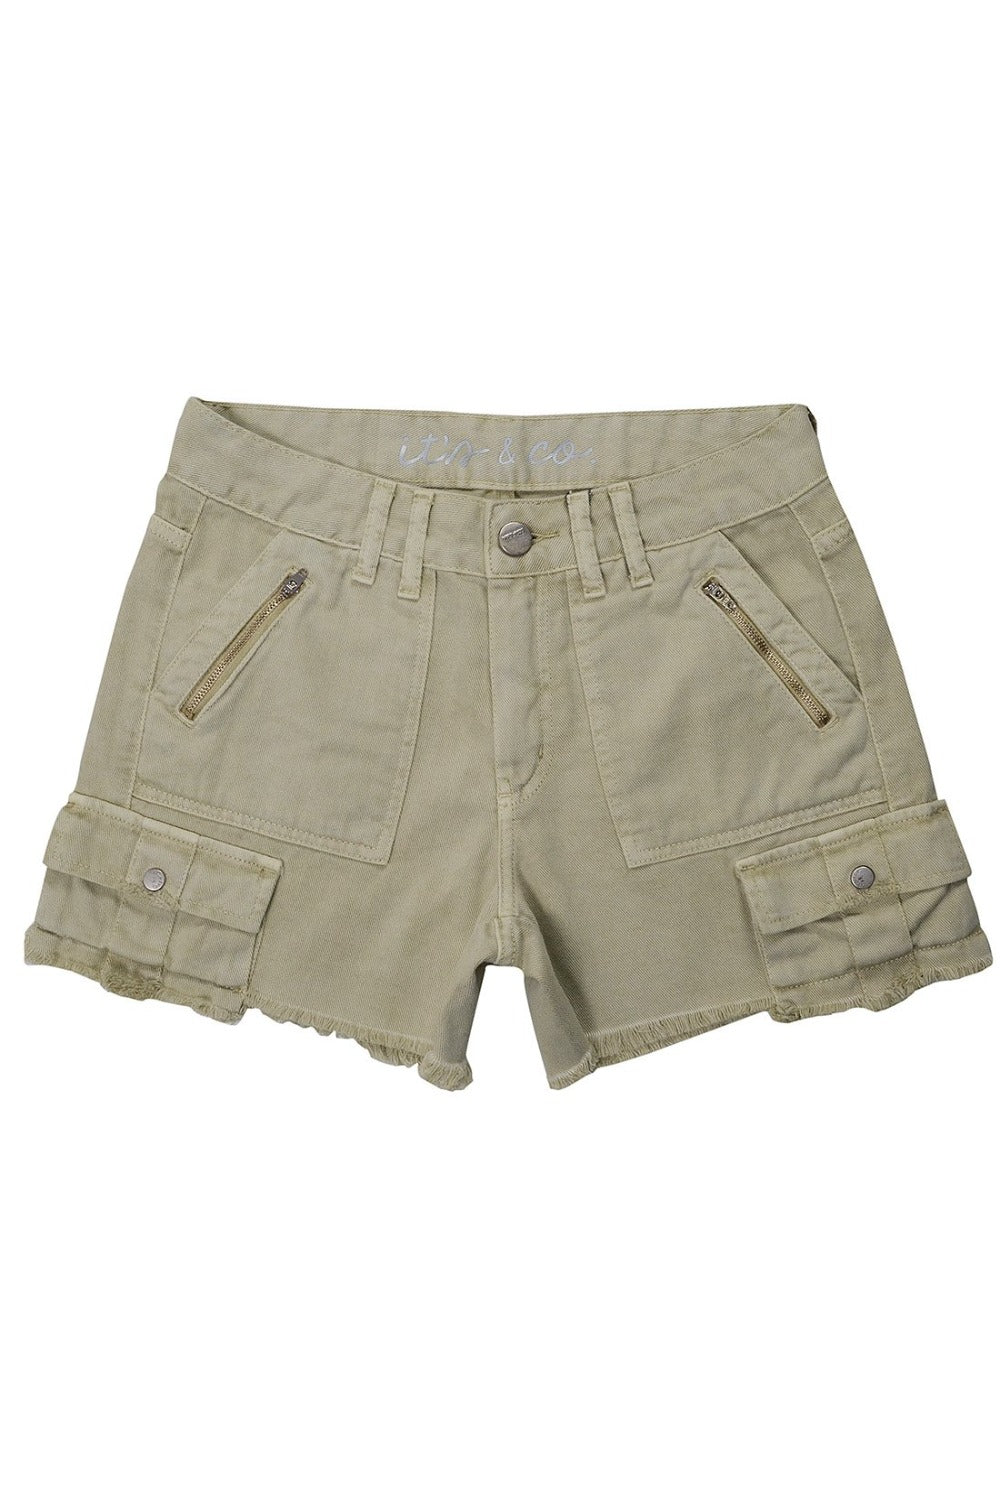 SHORT ITS&CO GISELE